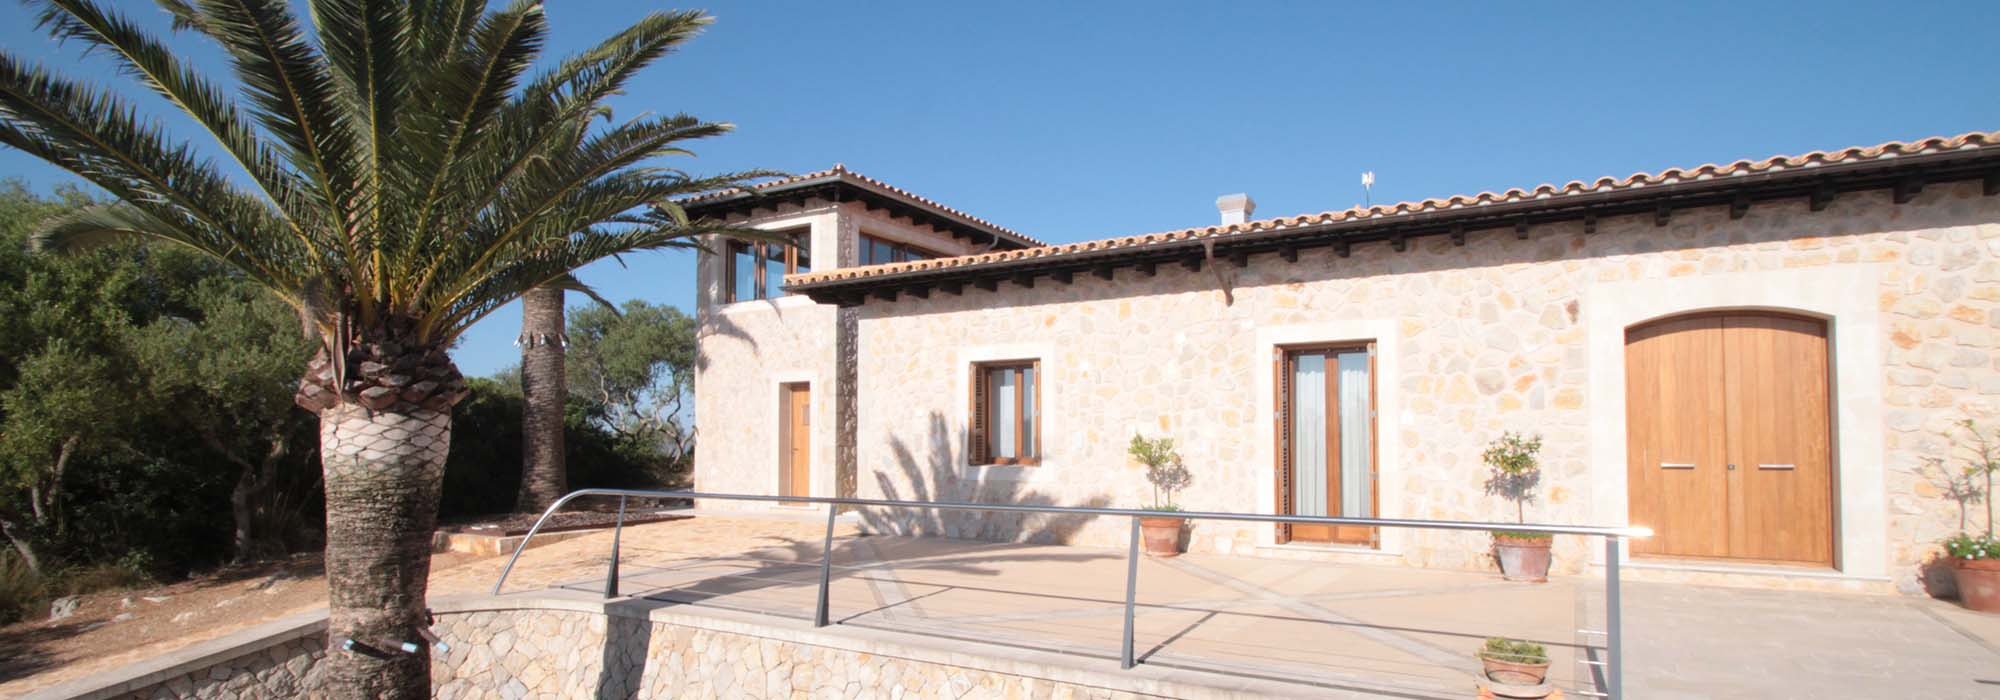 Natural stone cladding country house on a hill with panoramic sea views close to Manacor